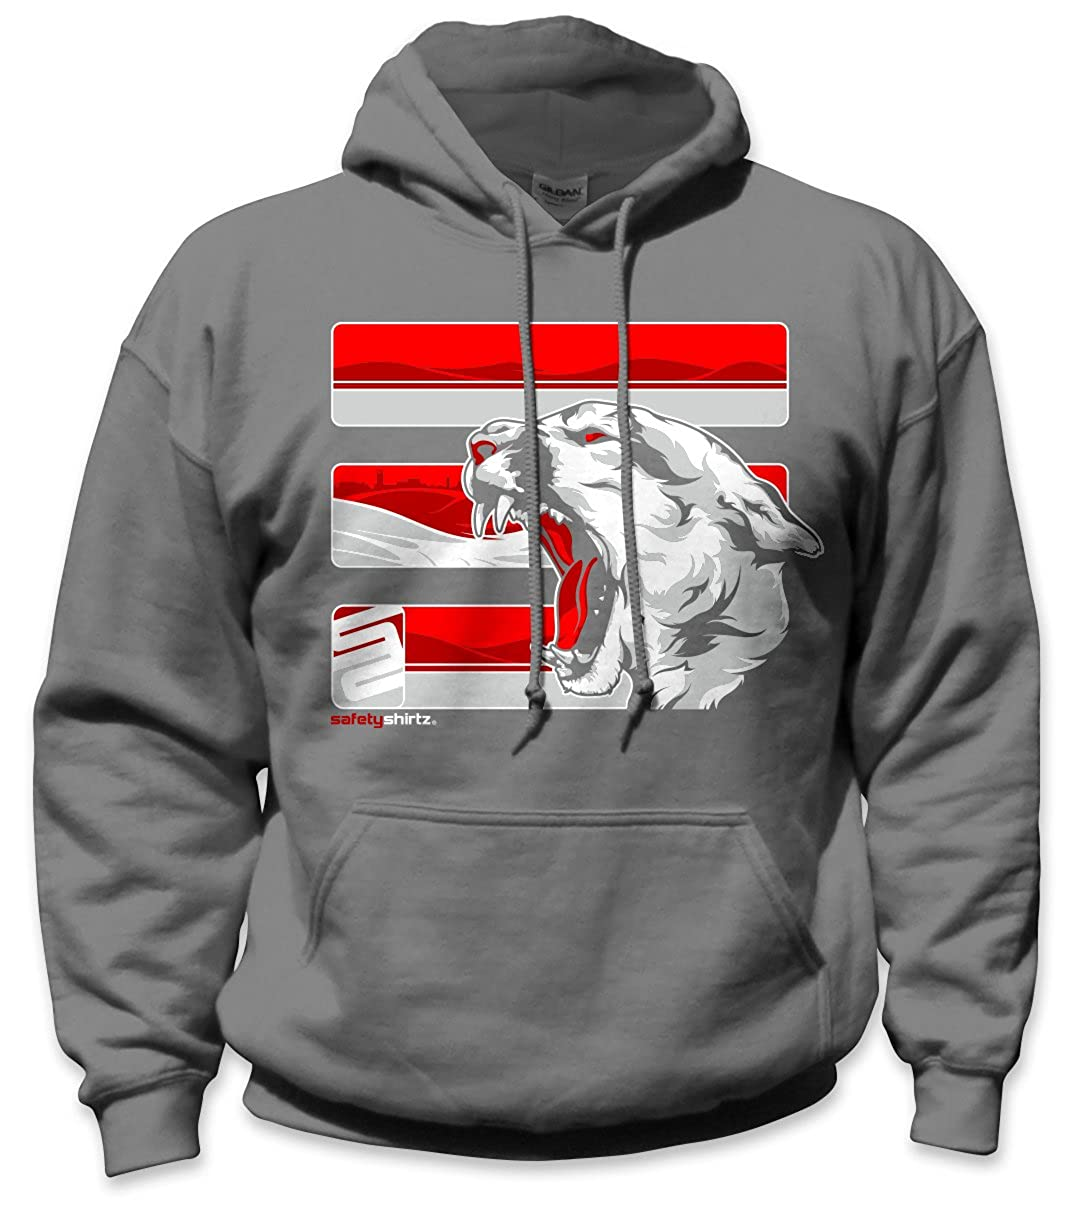 c643ef4cd SafetyShirtz The Palouse Safety Hoody Gray w/ Red at Amazon Men's Clothing  store: